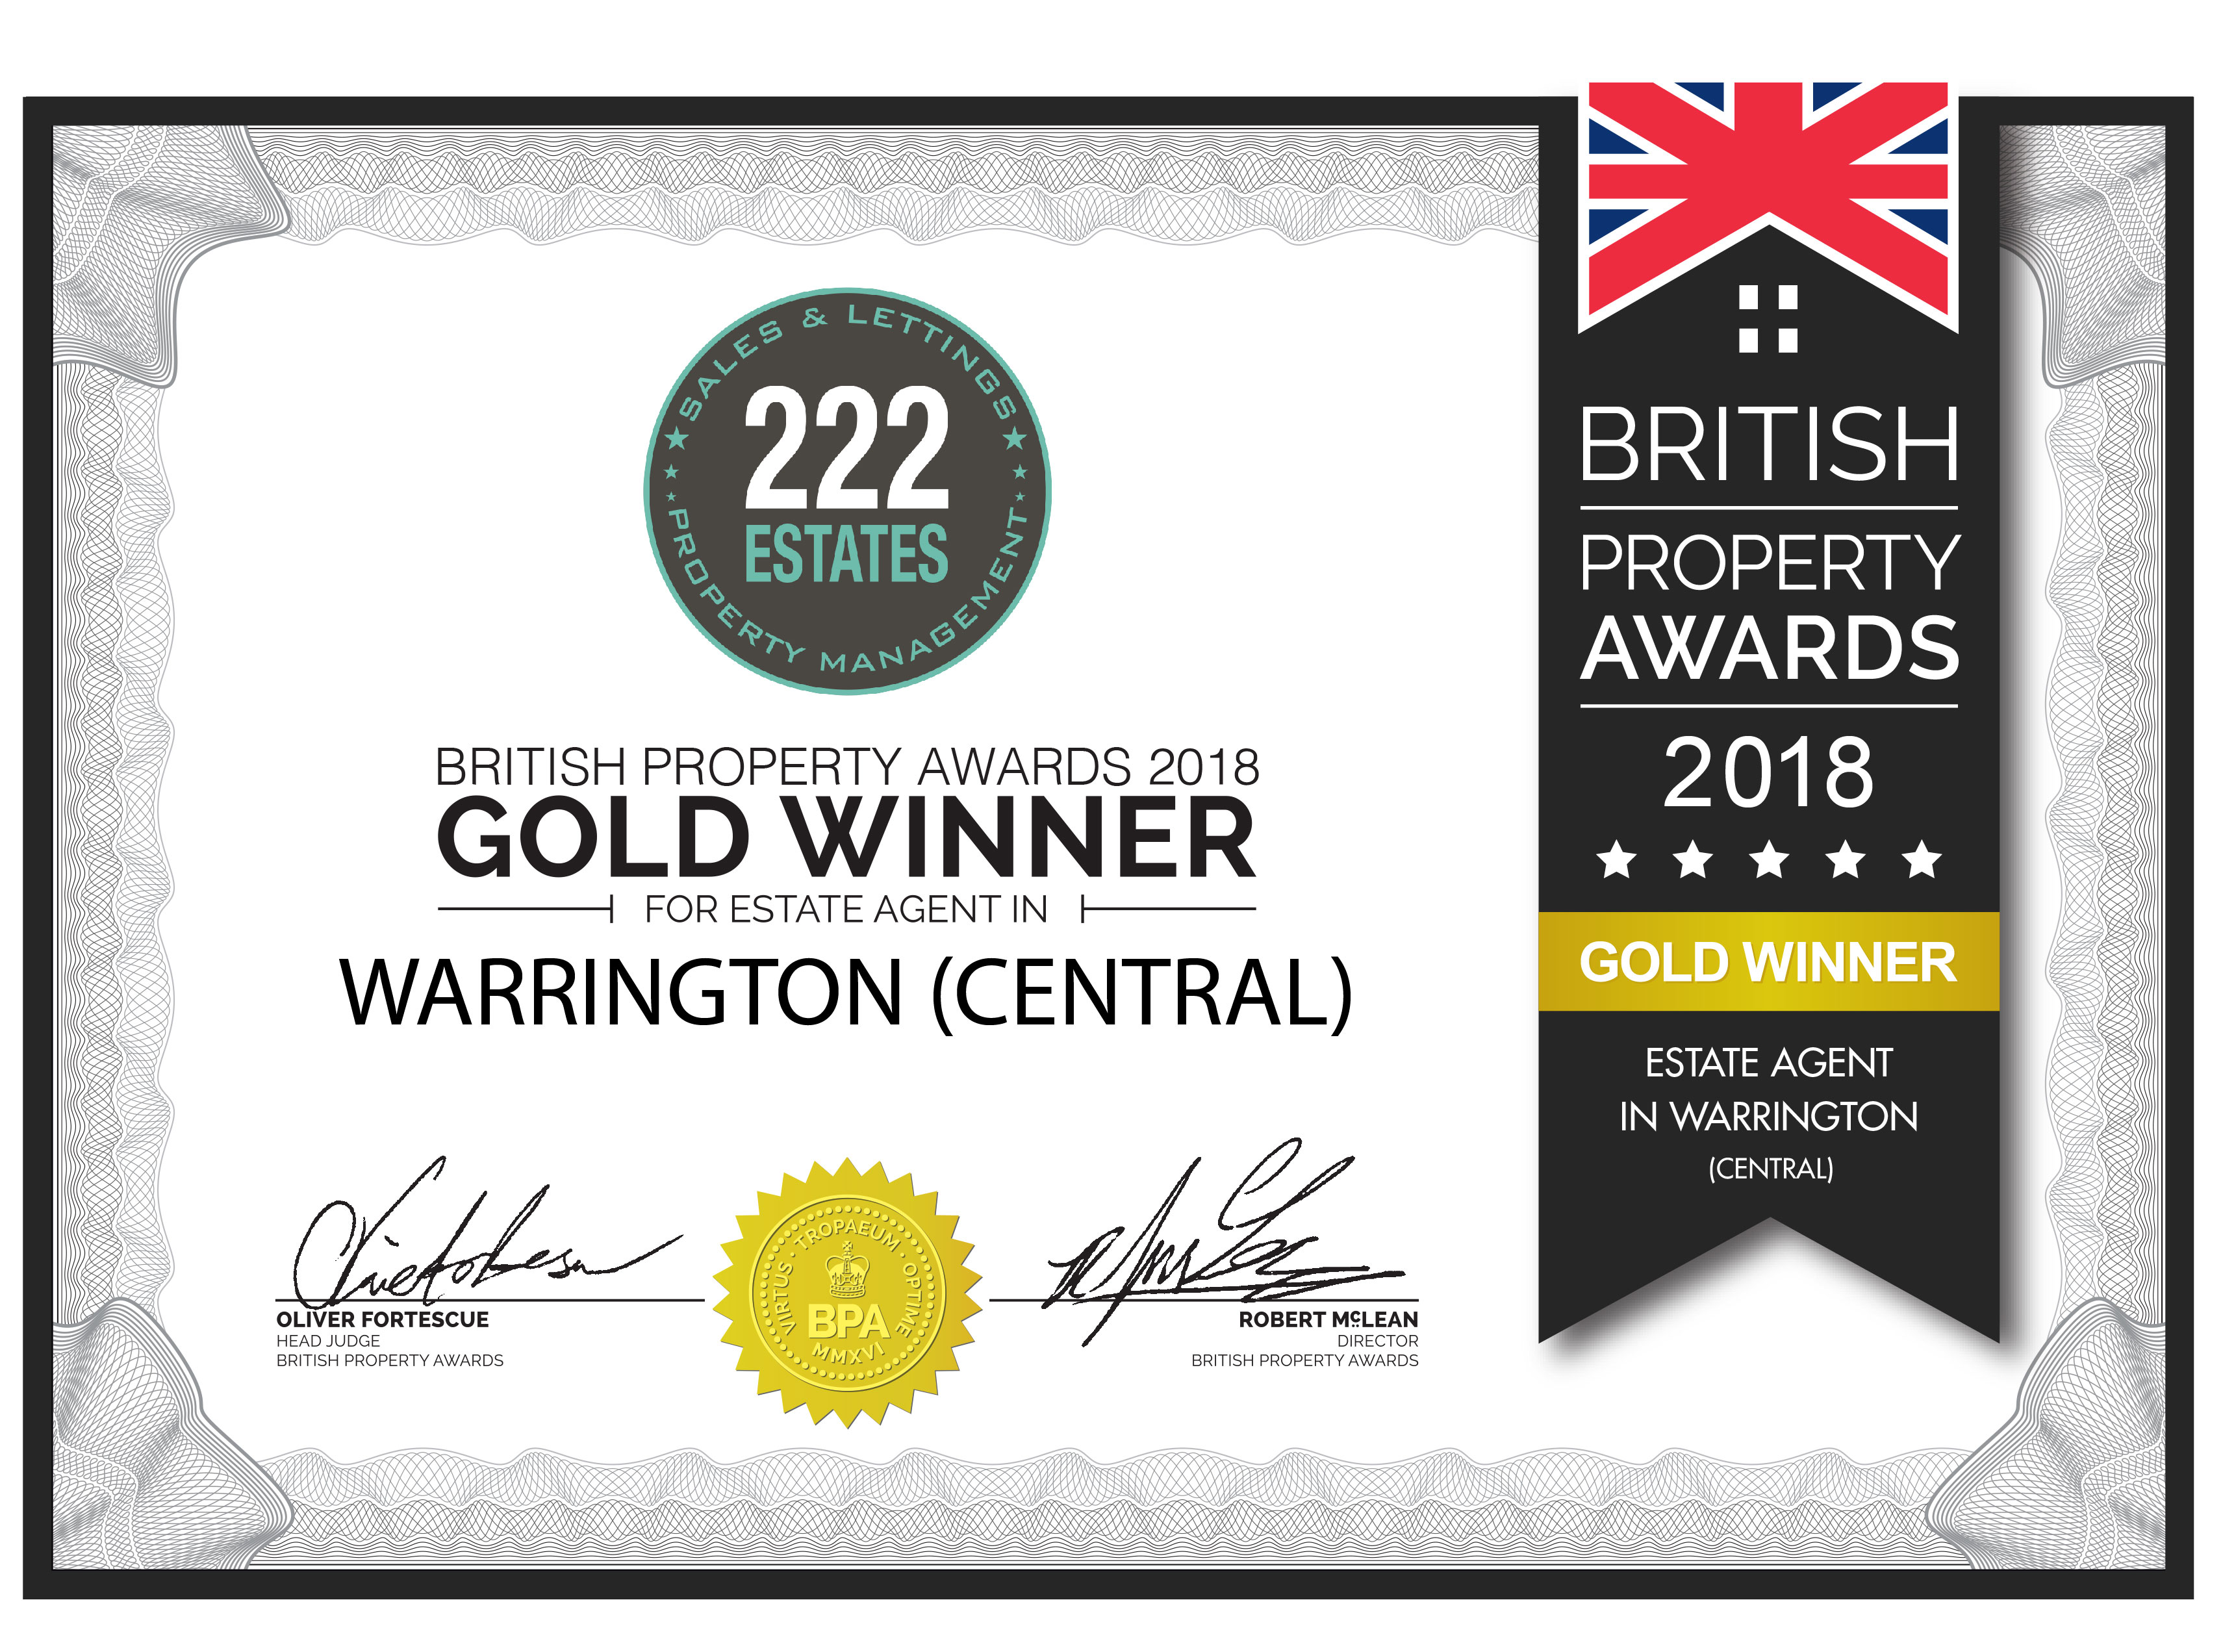 British Property Awards 2018 Gold Winners for Best Estate Agents in Warrington Central